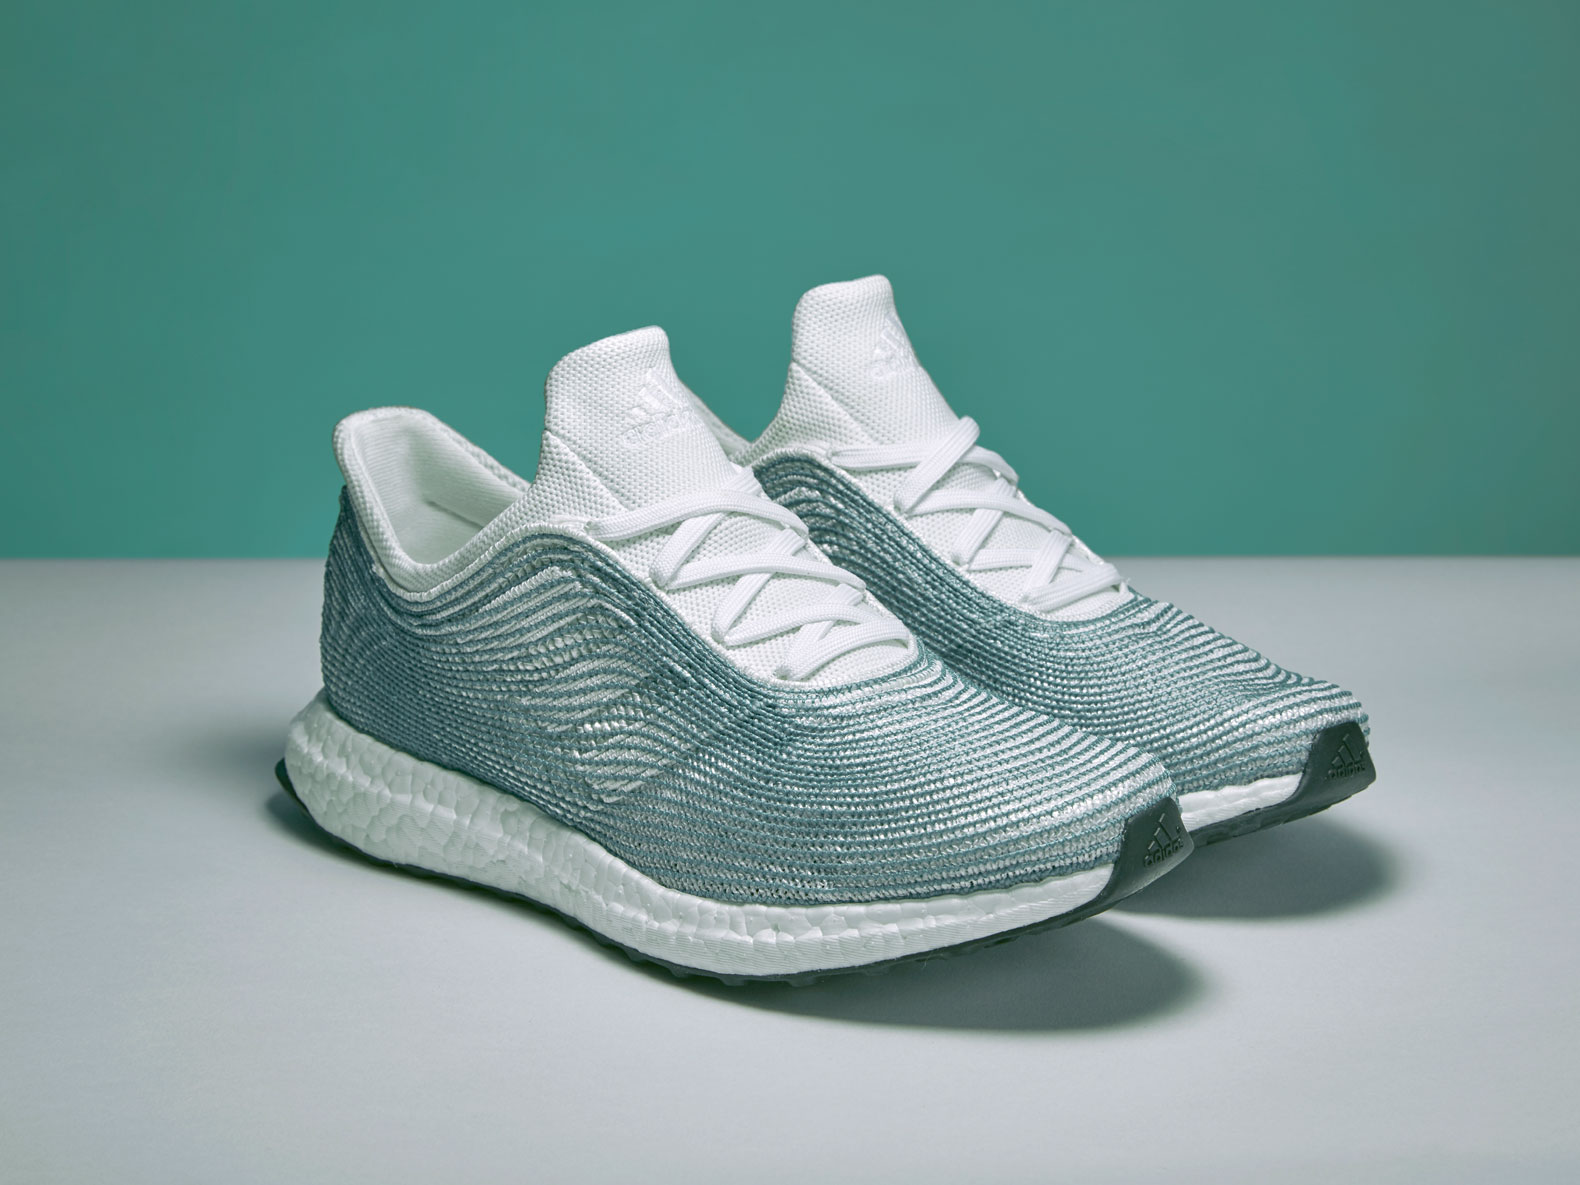 Adidas, Parley Giving Away 50 Pairs of Shoes Made From Ocean Plastic